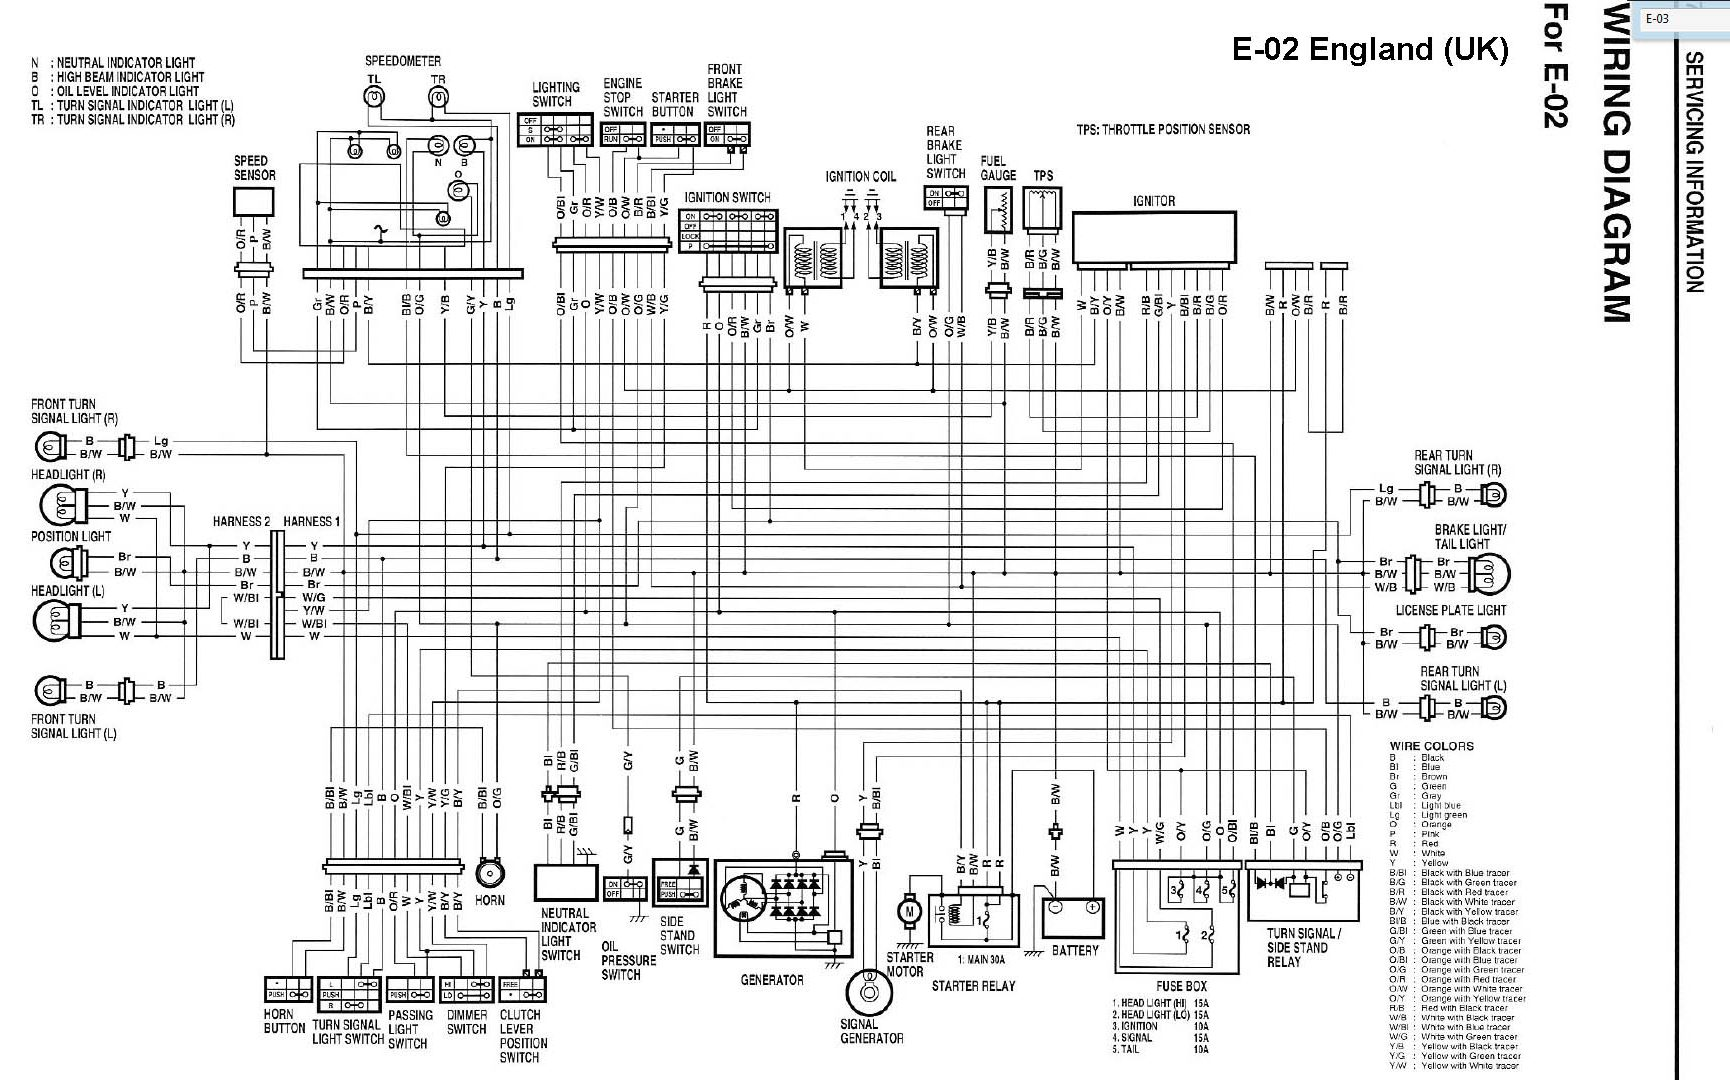 suzuki gsxf katana 600f 750f 1100f skhema elektroprovodki wiring diagram 1?resize\\\\\\\\\\\\\\\\\\\\\\\\\\\\\\\\\\\\\\\\\\\\\\\=665%2C415 wire diagram 95 katana wiring diagrams Simple Wiring Schematics at gsmx.co